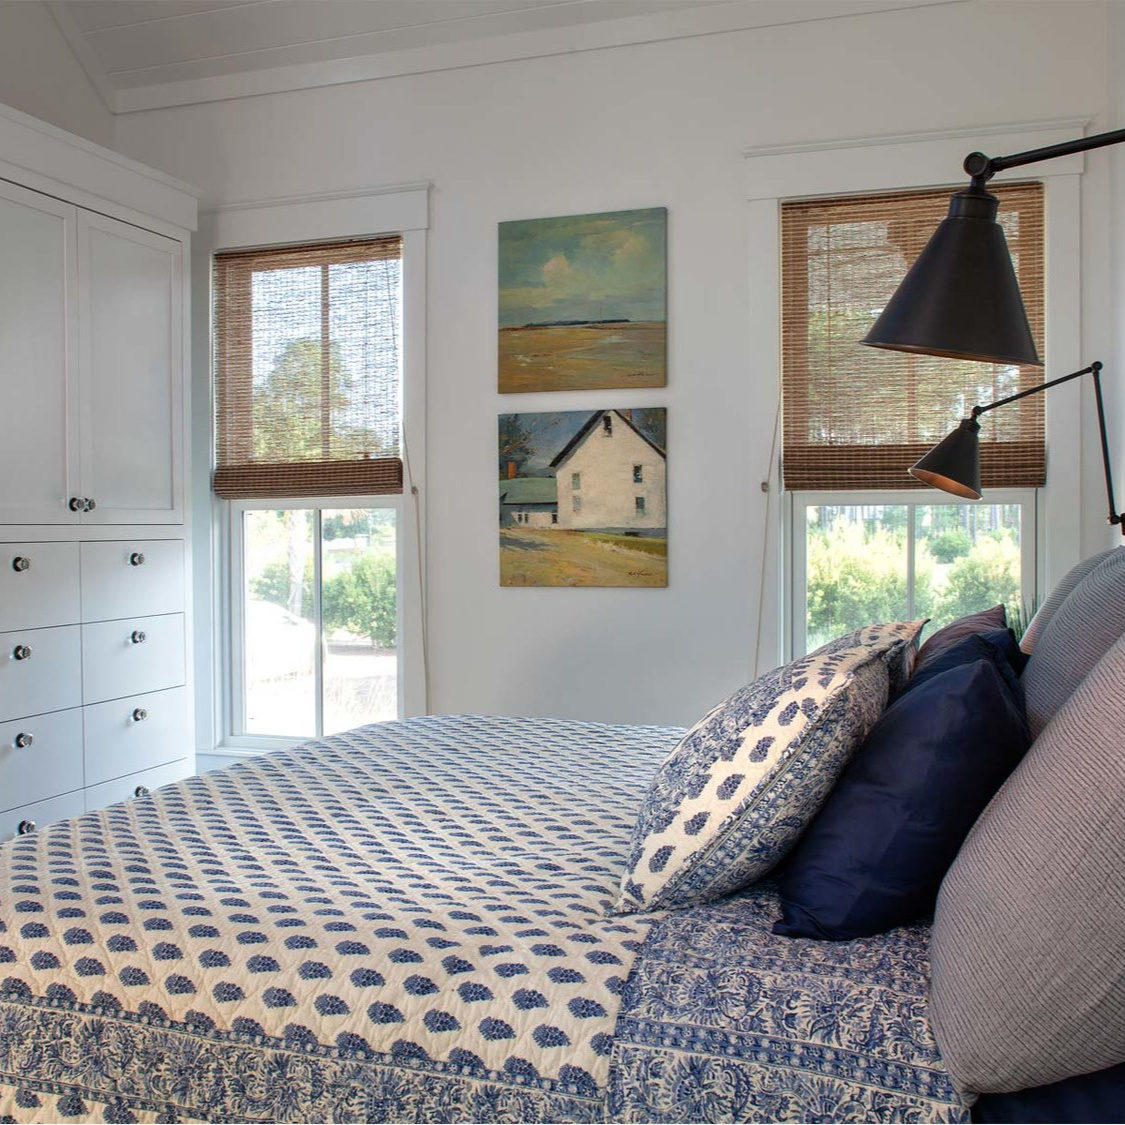 Coastal bedroom with blue paisley bedding, built-ins, and black swing arm task sconces - Lisa Furey. Score more Coastal Cottage Inspo, Paint Colors & Whimsy Quotes here!